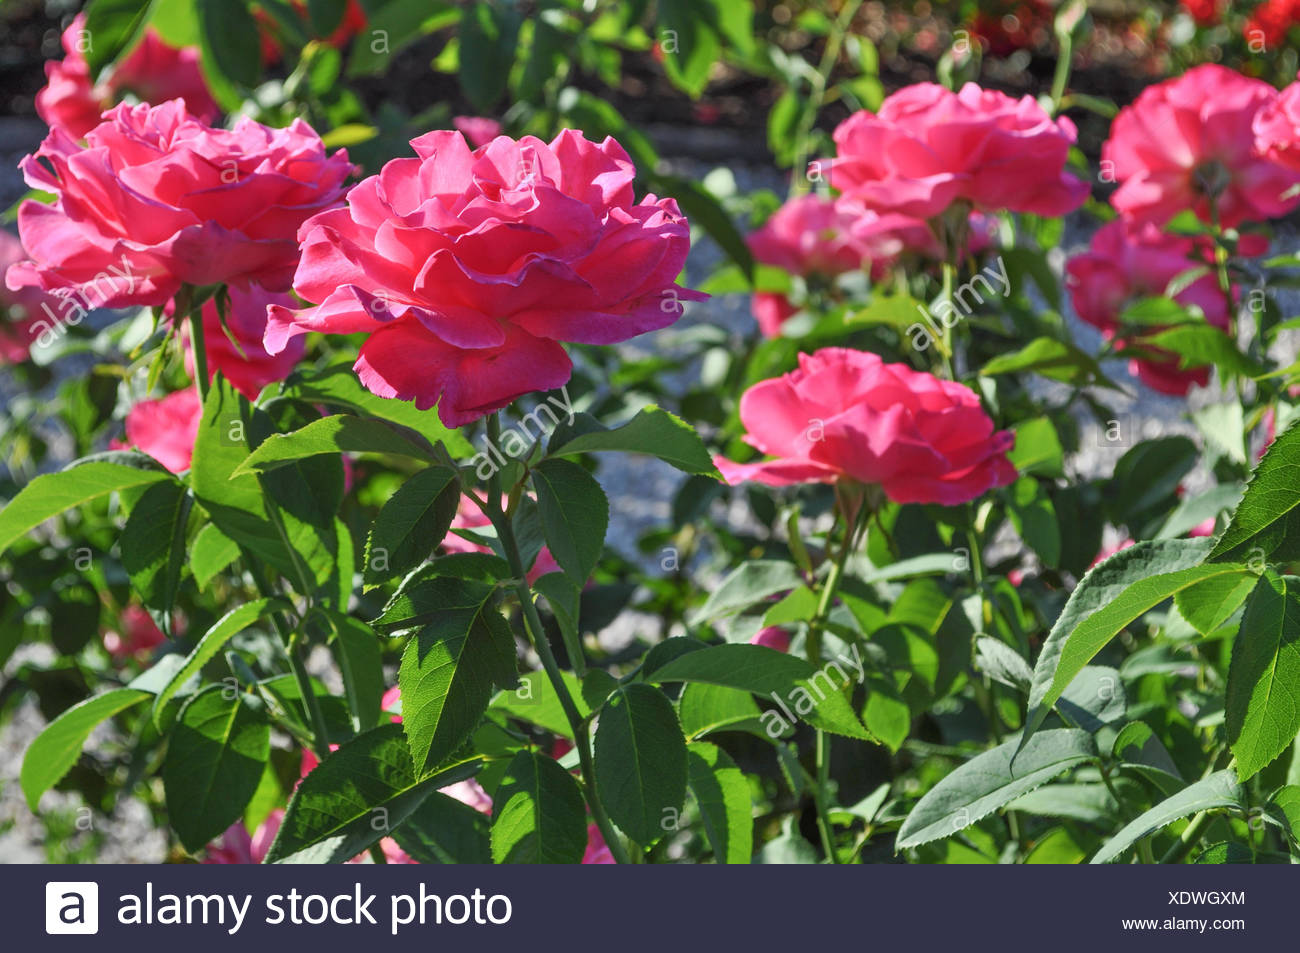 Rose Perennial Flower Shrub Vine Stock Photos Rose Perennial